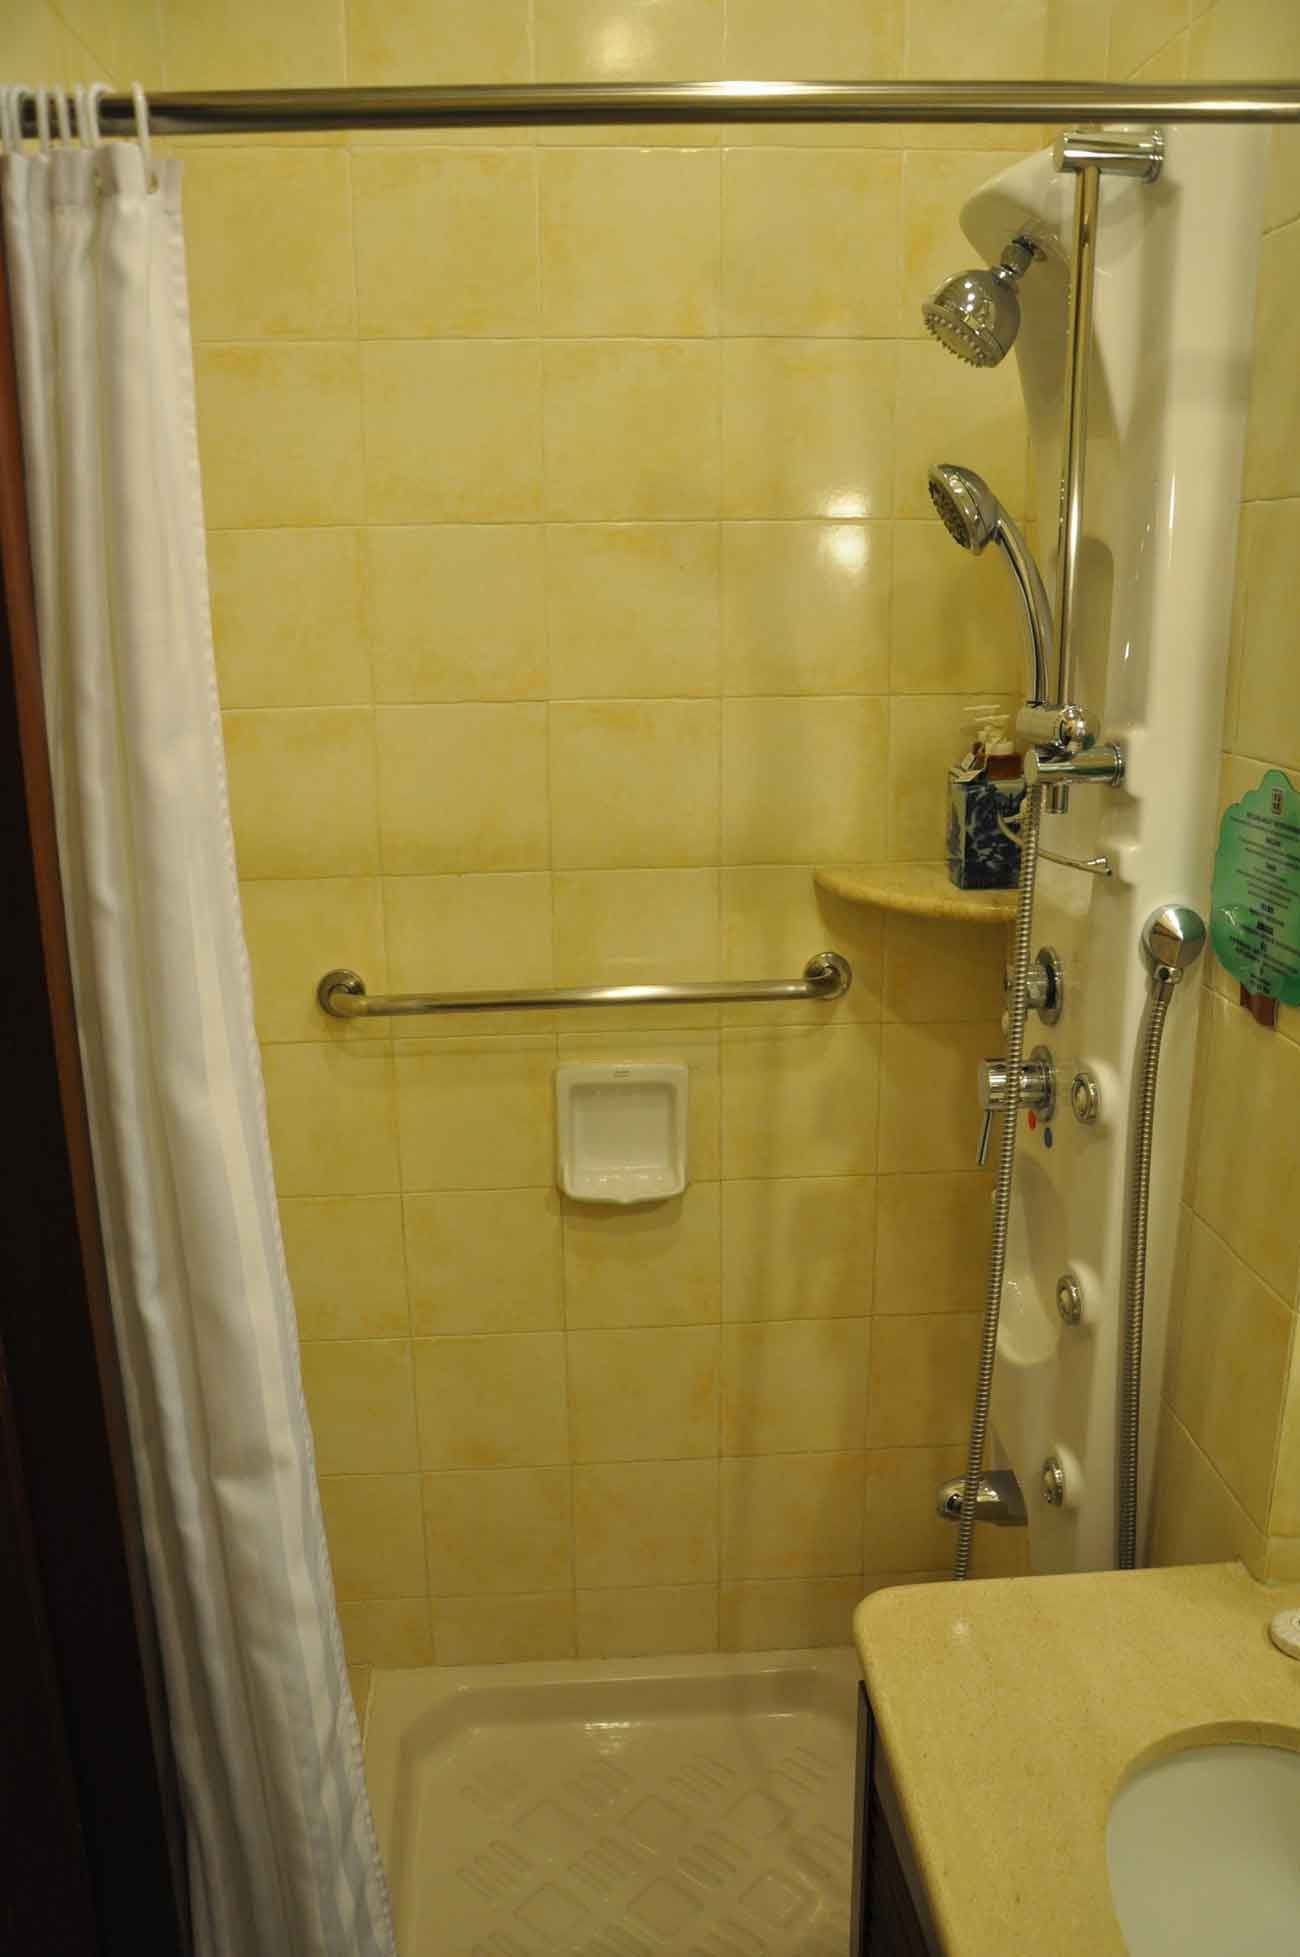 Pousada de Mong Ha Standard Room shower